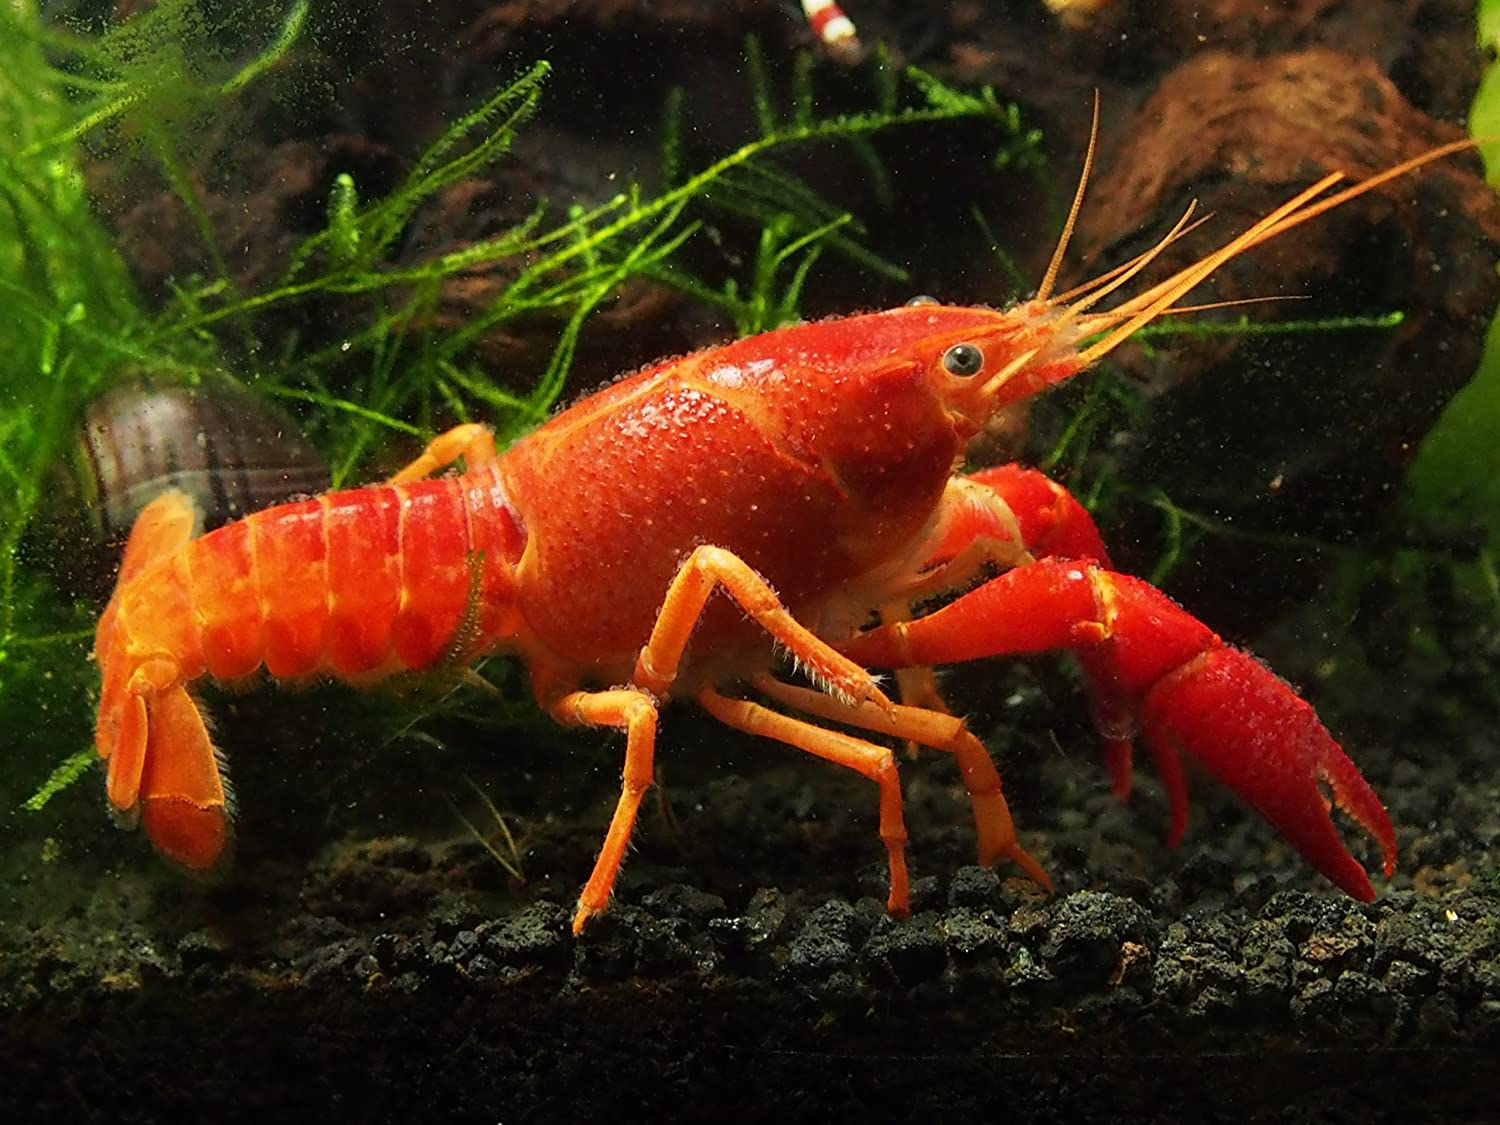 Amazon.com : 1 Live Neon Red Crayfish/Freshwater Lobster aka Orange ...